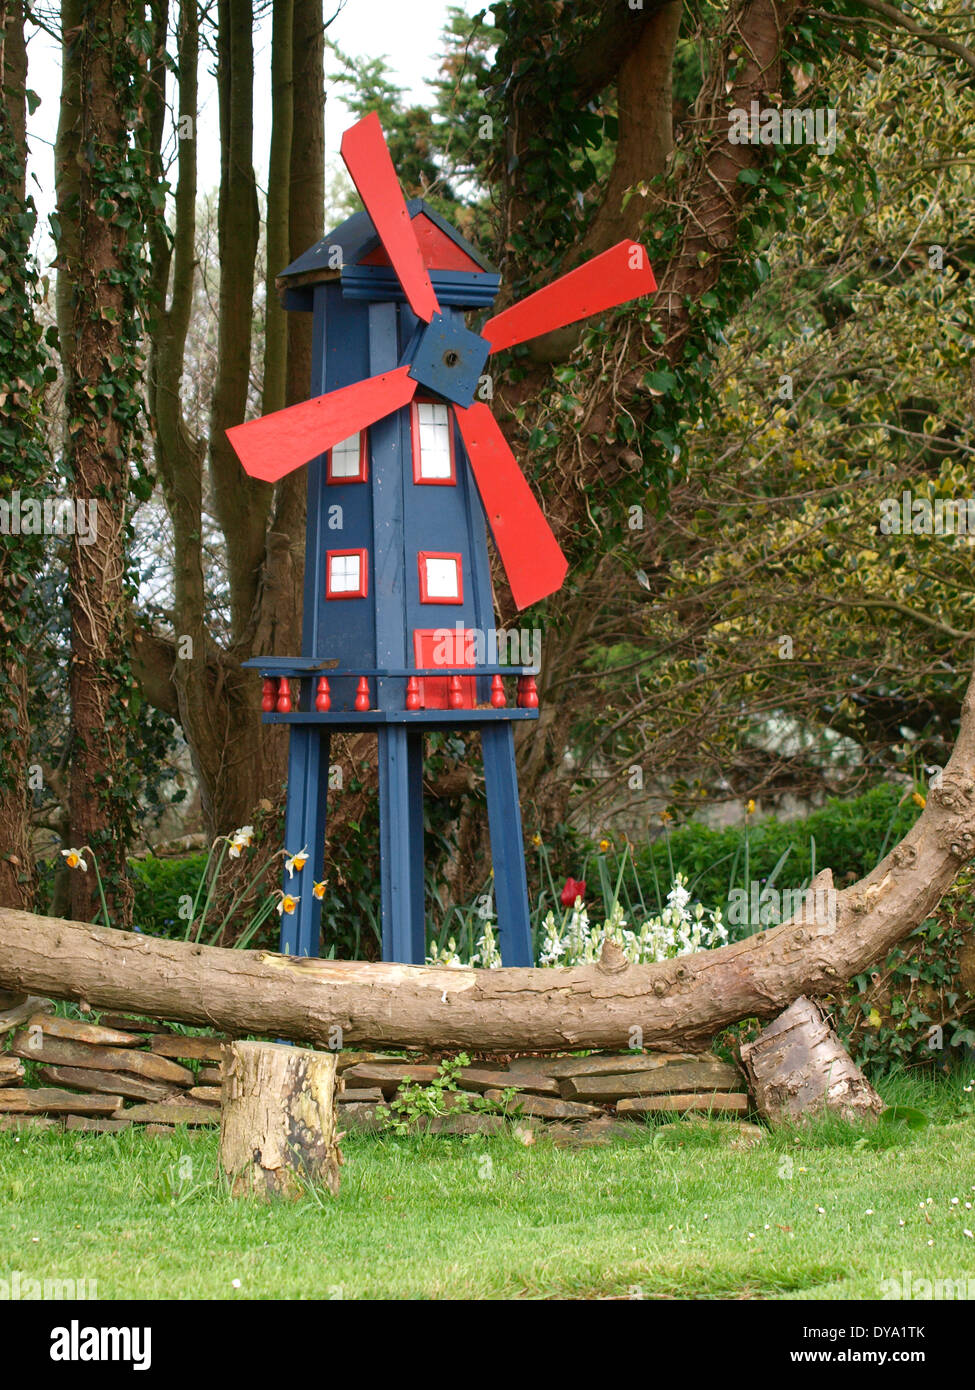 Ornamental Windmill In A Garden, Bude, Cornwall, UK   Stock Image